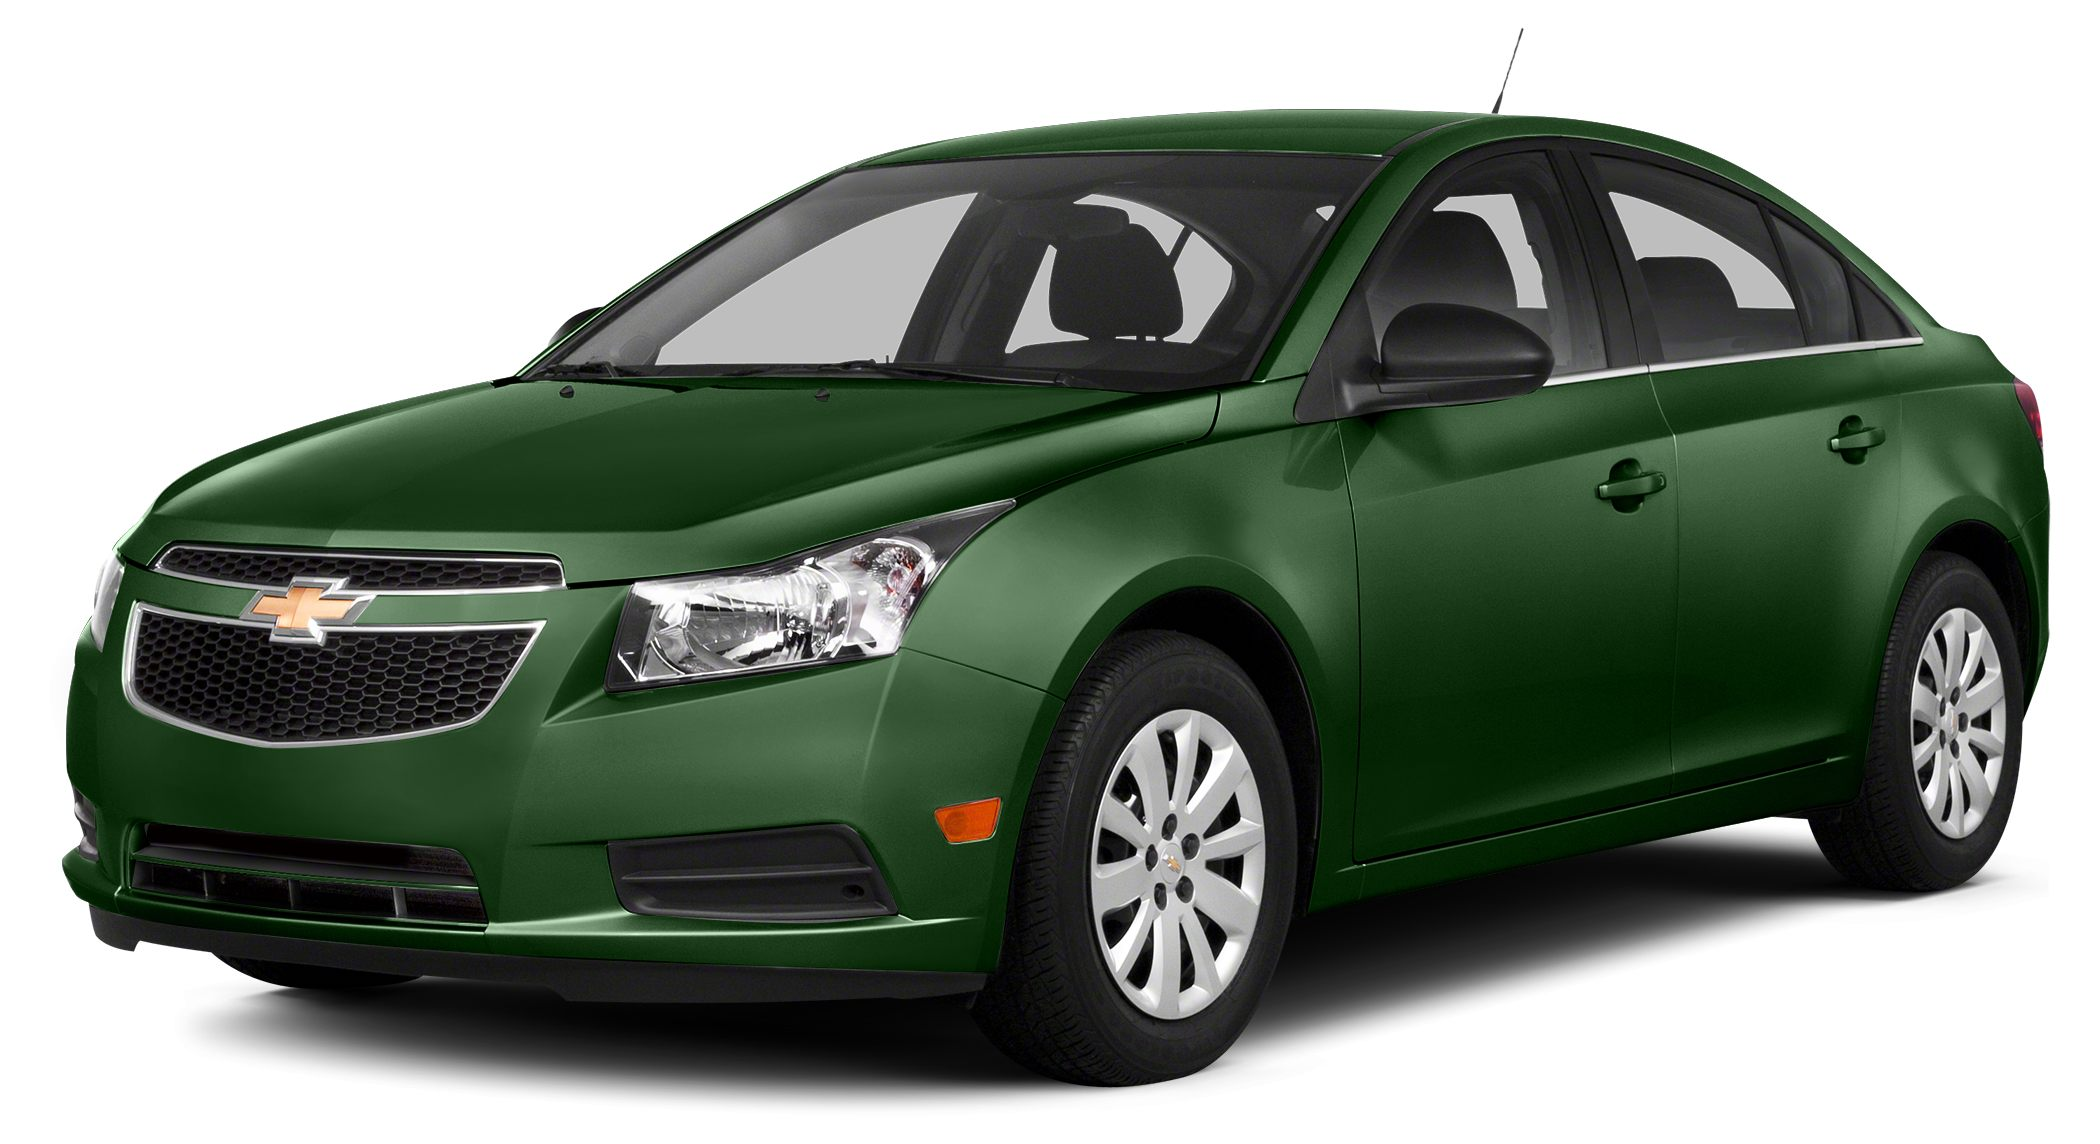 2014 Chevrolet Cruze LTZ An amazing compact car that will leave you breathless This gem will tran